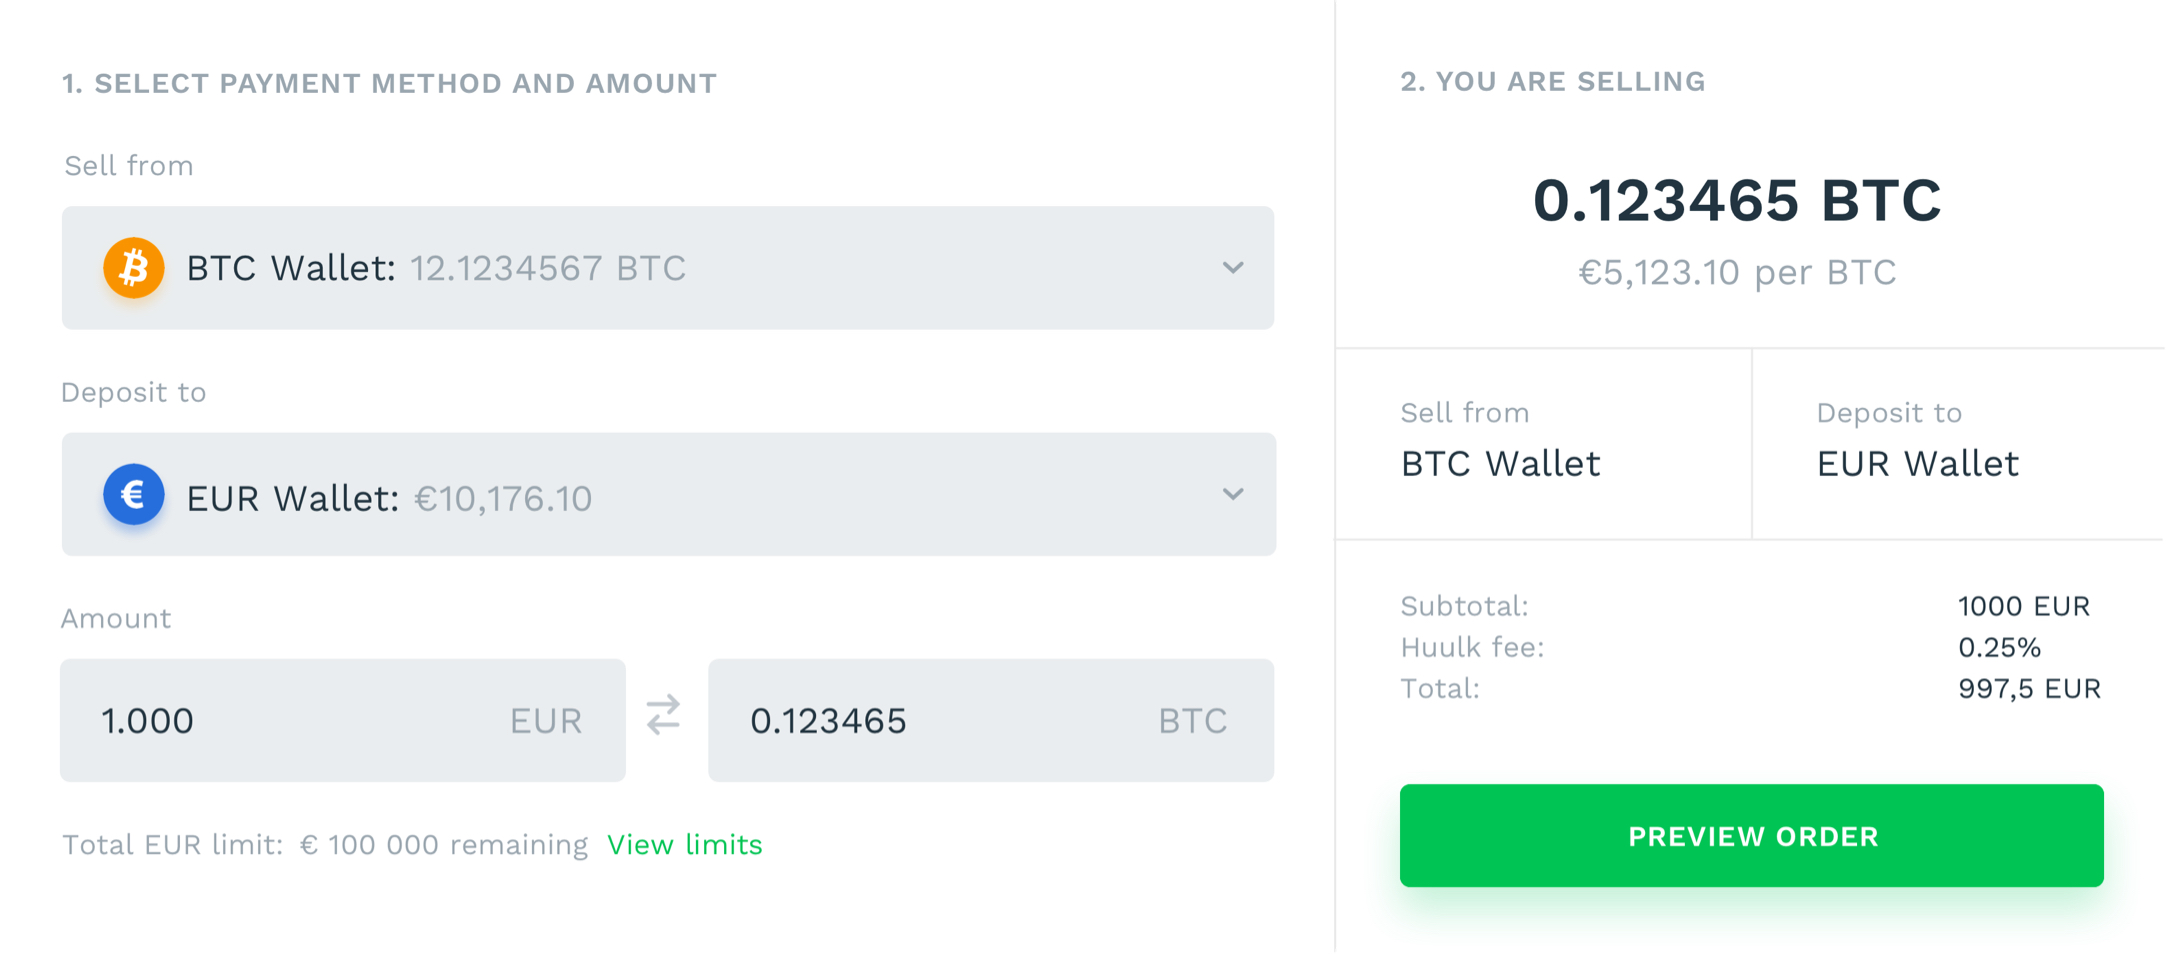 Huulk buy, sell and withdrawal screens